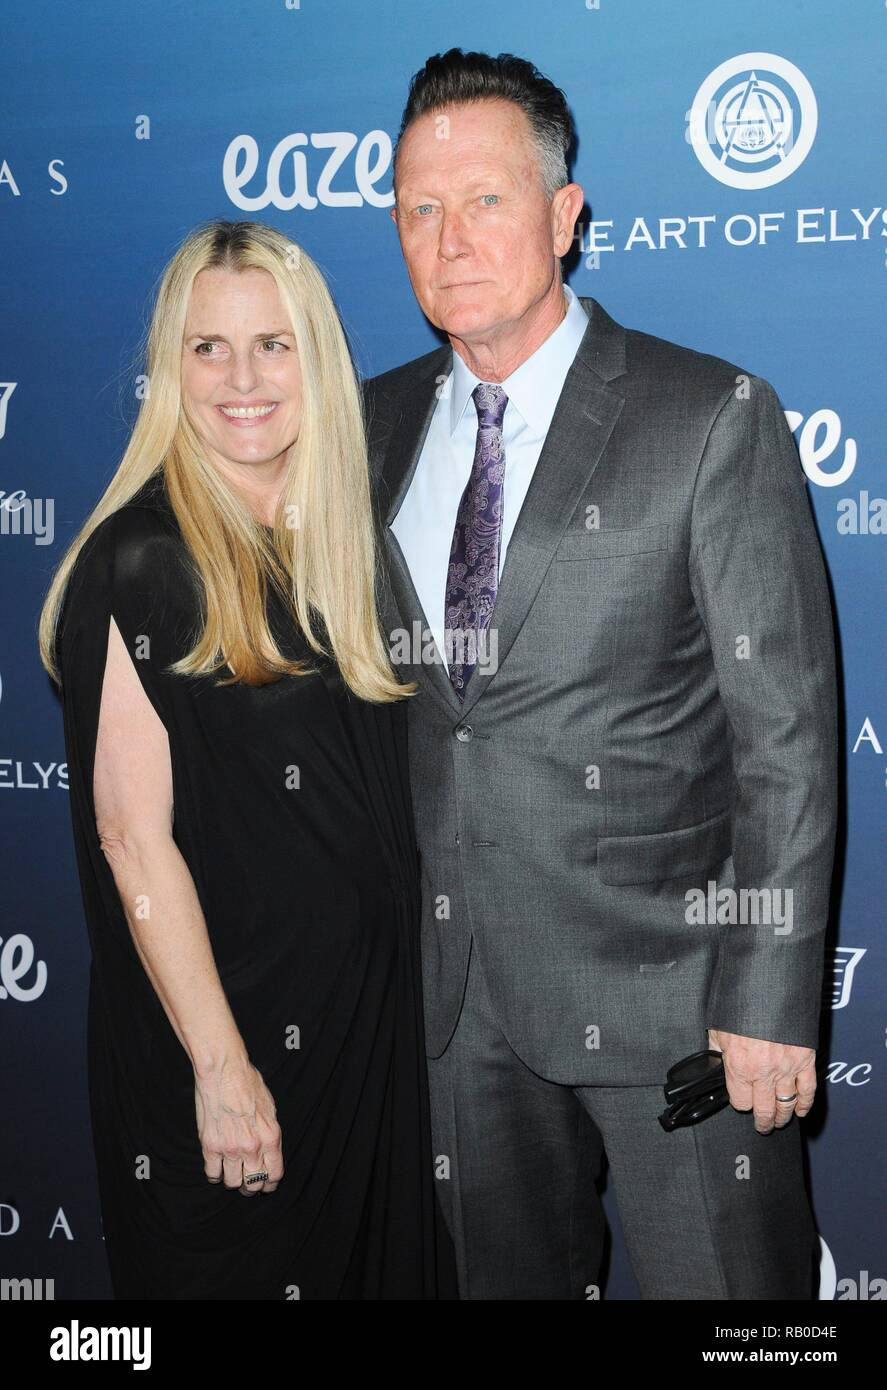 Robert Patrick at arrivals for The Art Of Elysium 12th Annual HEAVEN Gala, Private Venue, Los Angeles, CA January 5, 2019. Photo By: Elizabeth Goodenough/Everett Collection - Stock Image